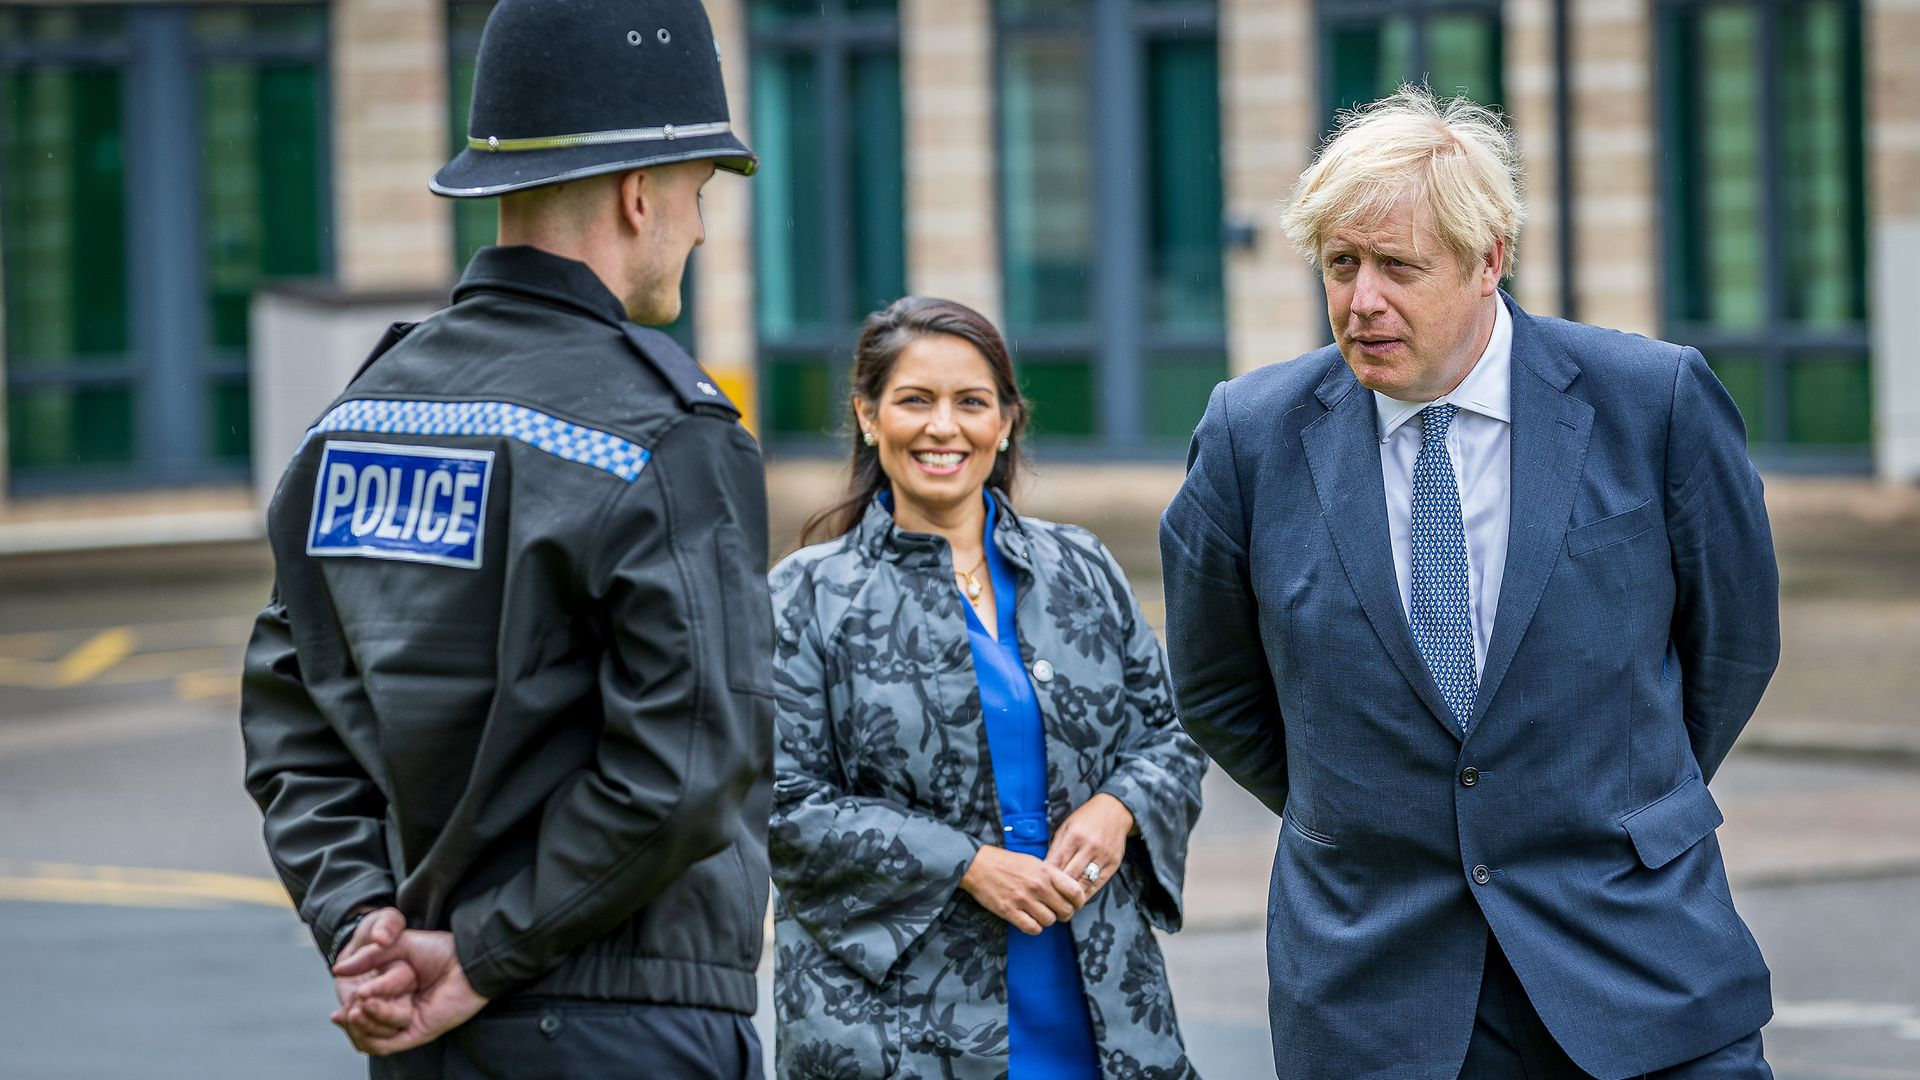 Prime Minister Boris Johnson and Home Secretary Priti Patel are introduced to recently graduated Police Officers - Credit: PA